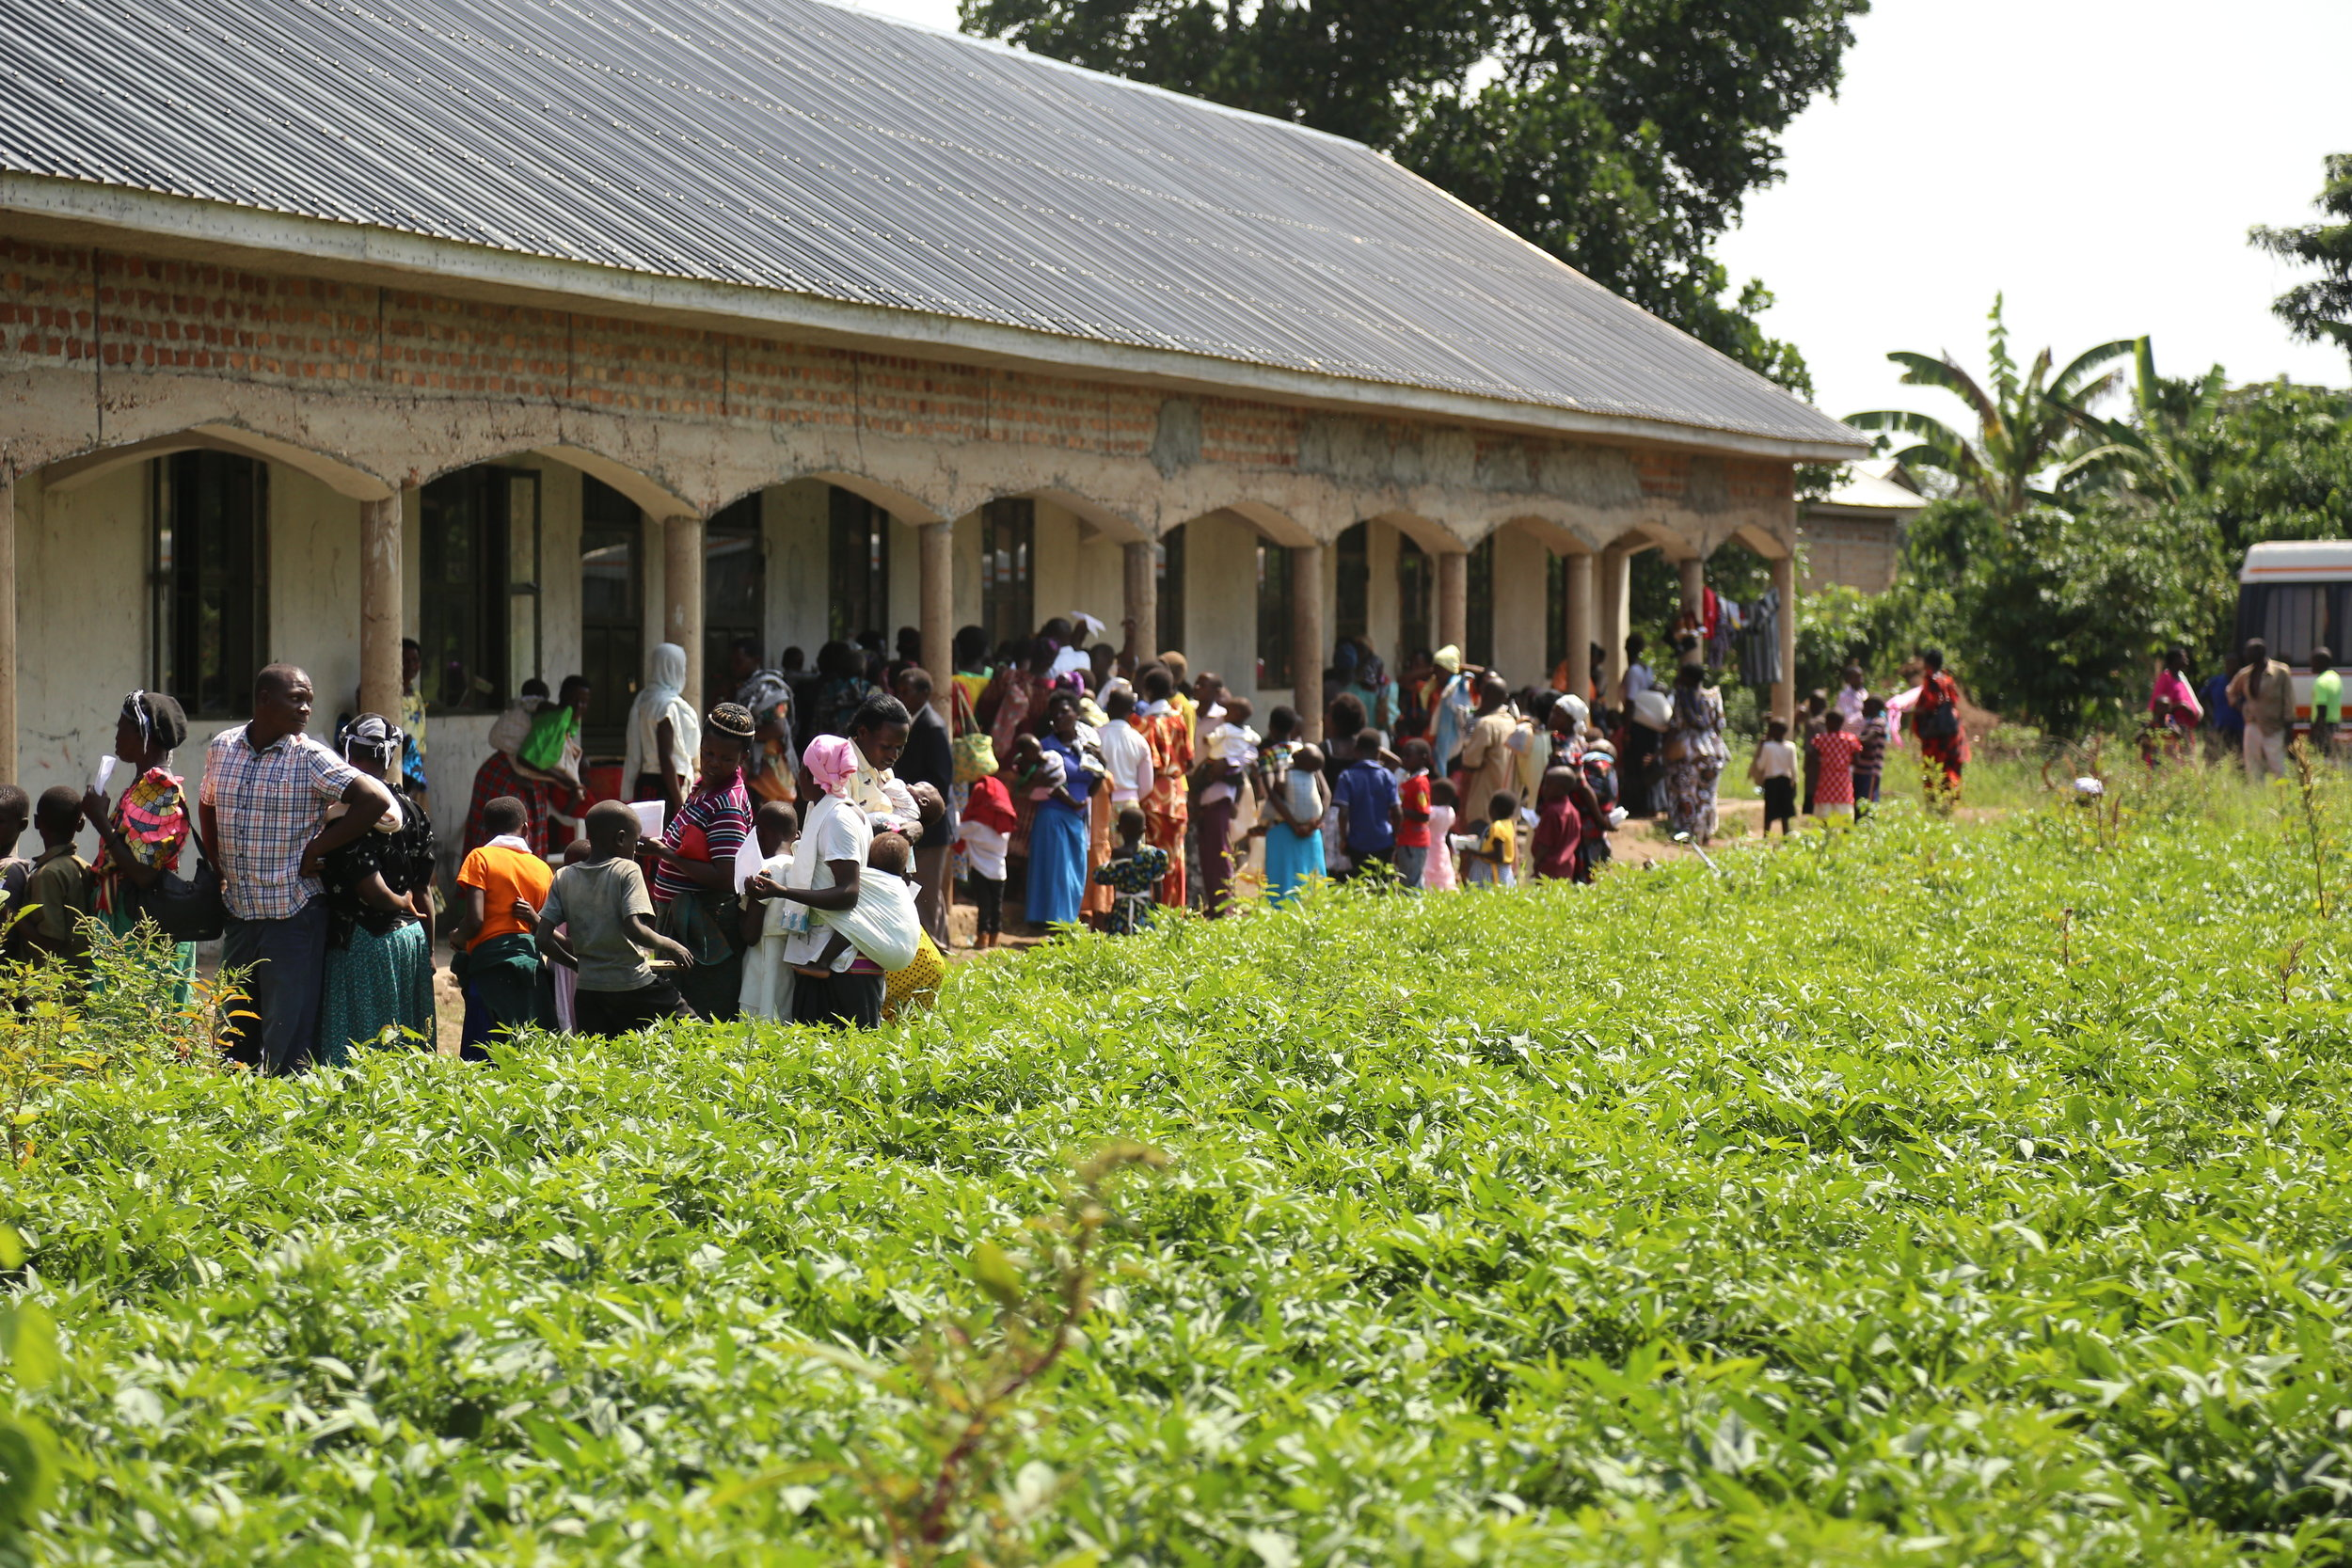 Village School Block #1 - people lining up for medical clinic